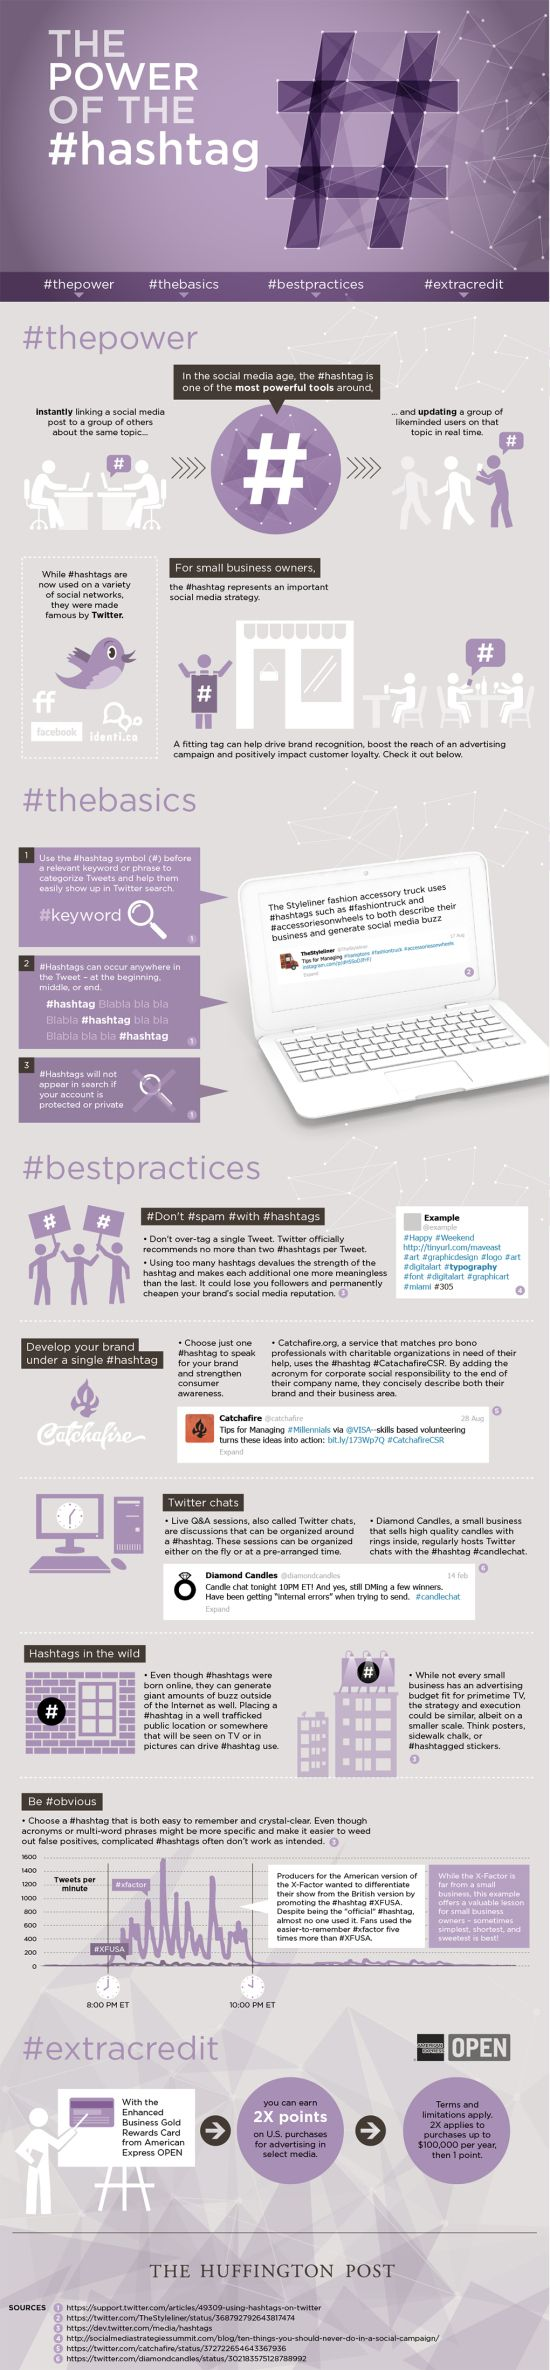 #Hashtags - The Ins And Outs Of A Great Social Media, Marketing And PR Tool.